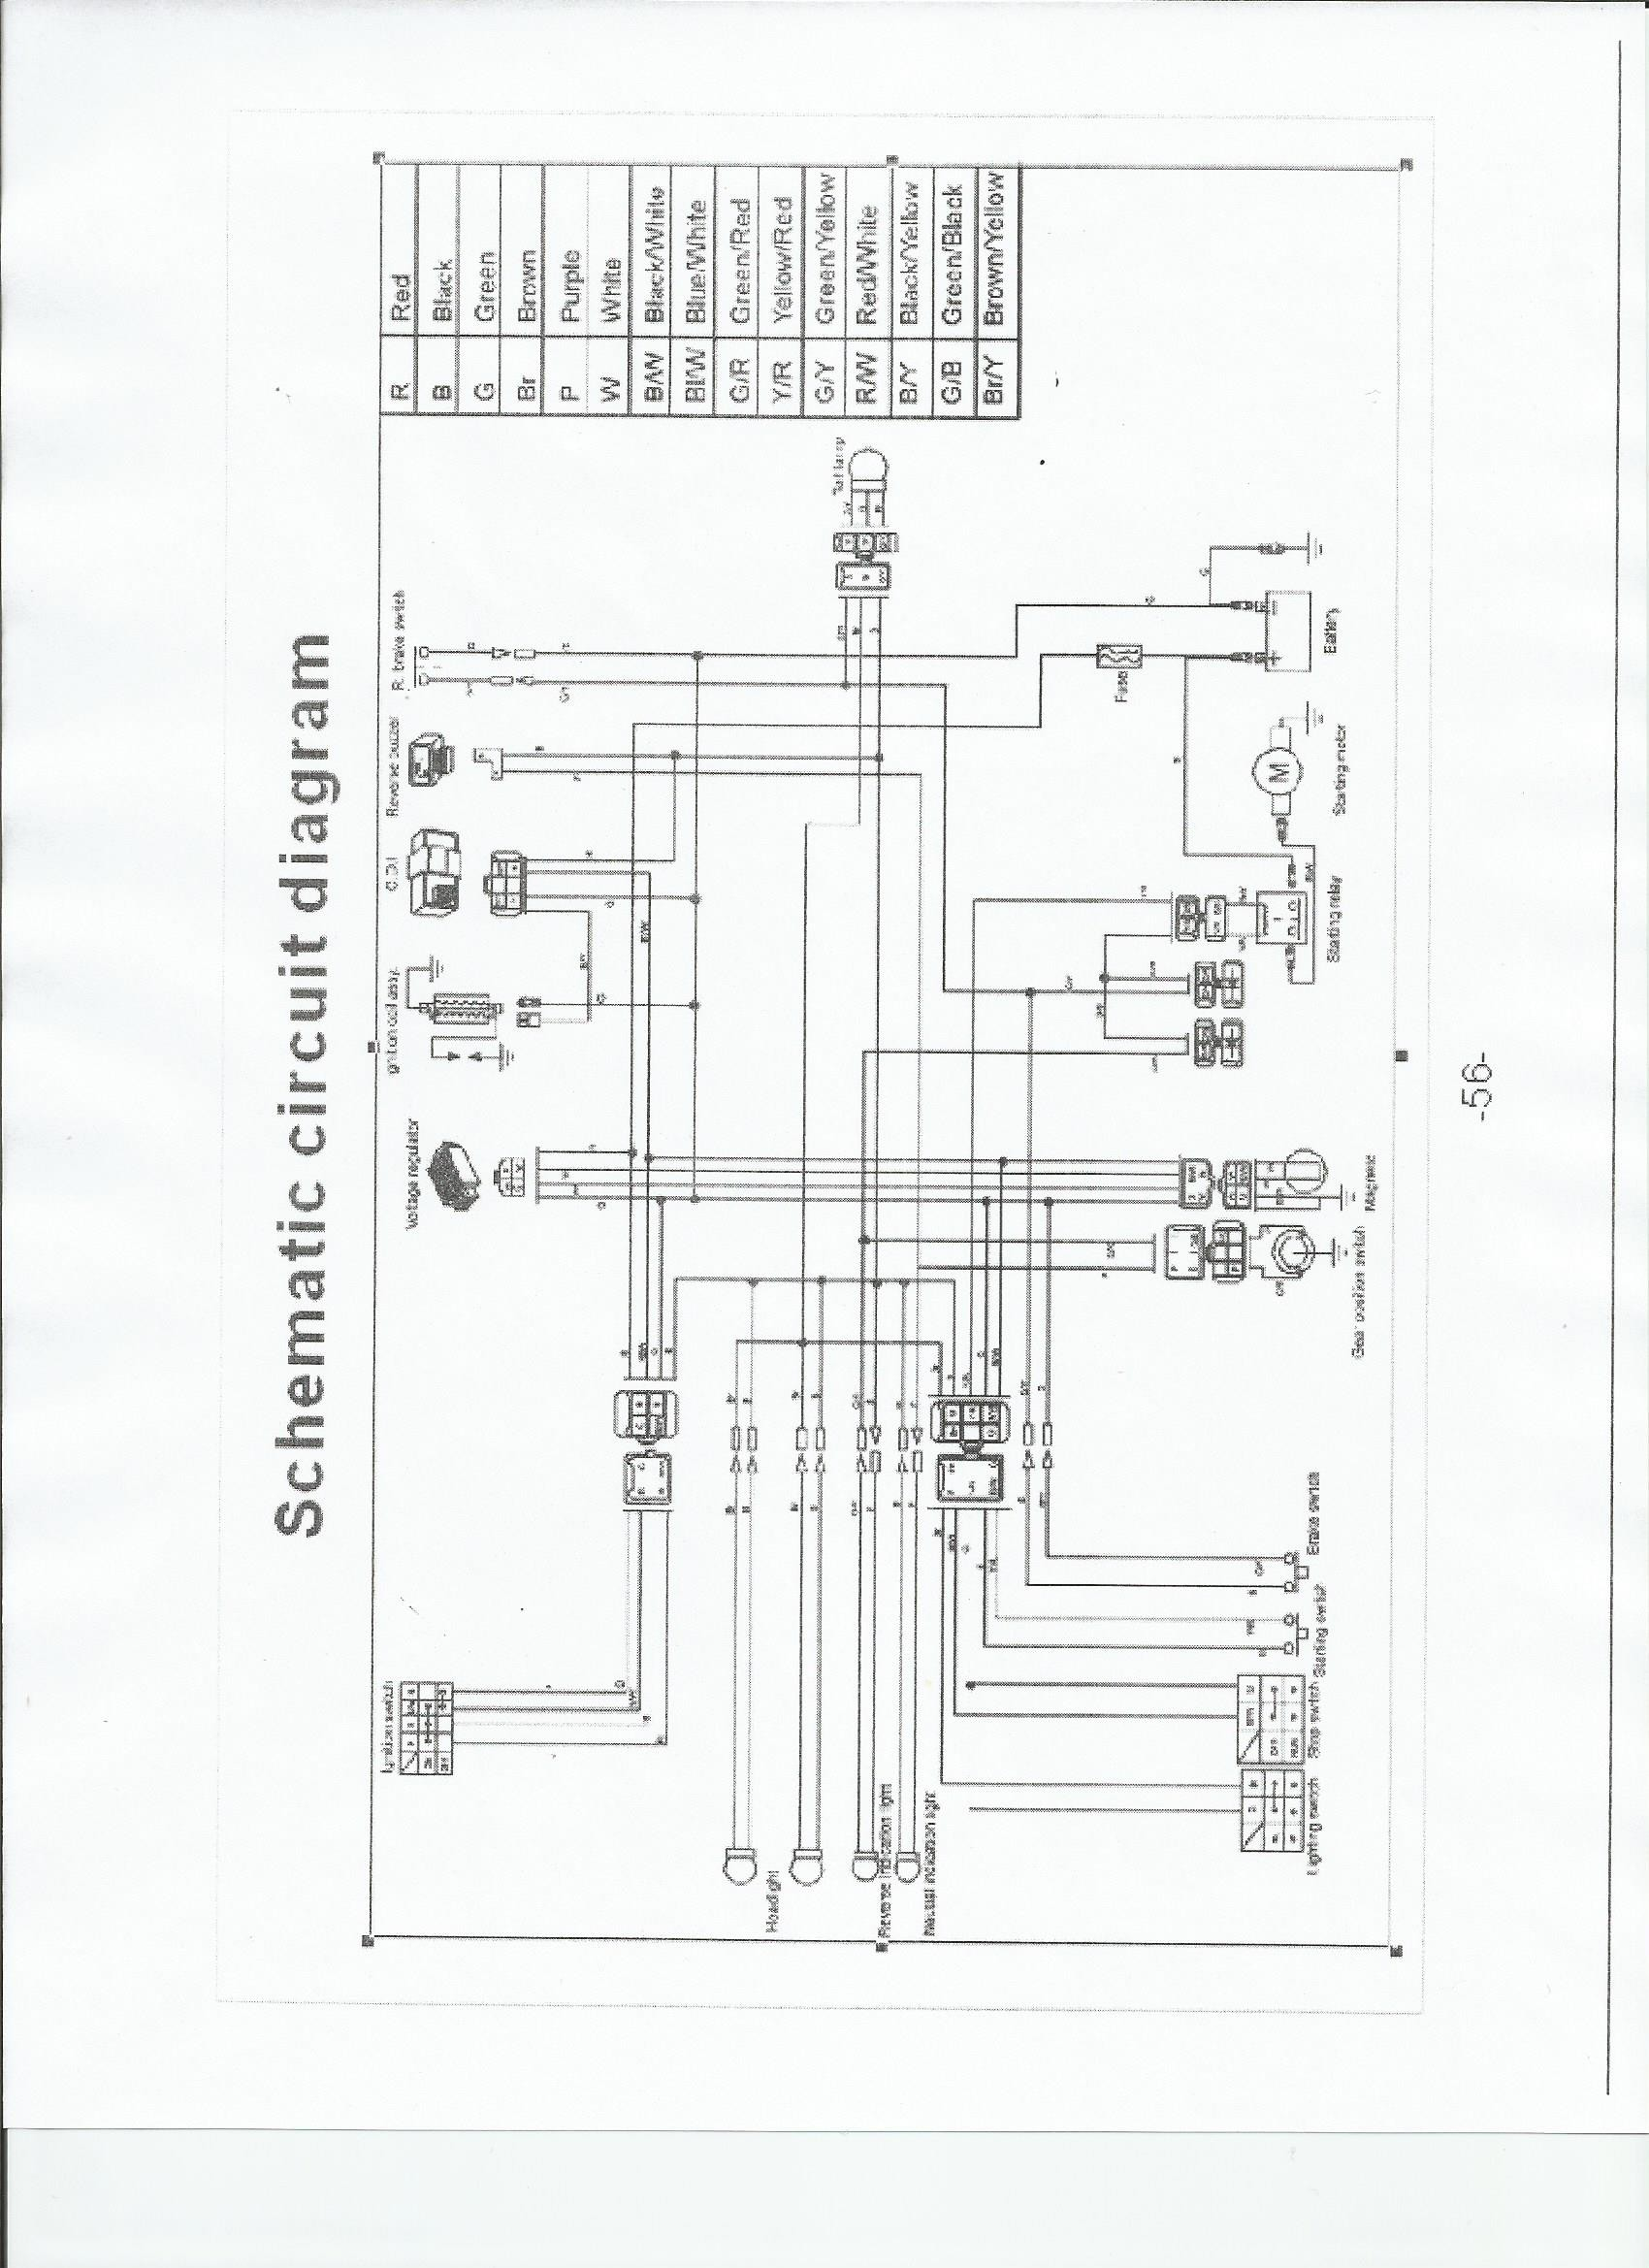 Tao Tao Cc Wheeler Wiring Diagram Wiring Info - Wiring diagram for 110cc 4 wheeler